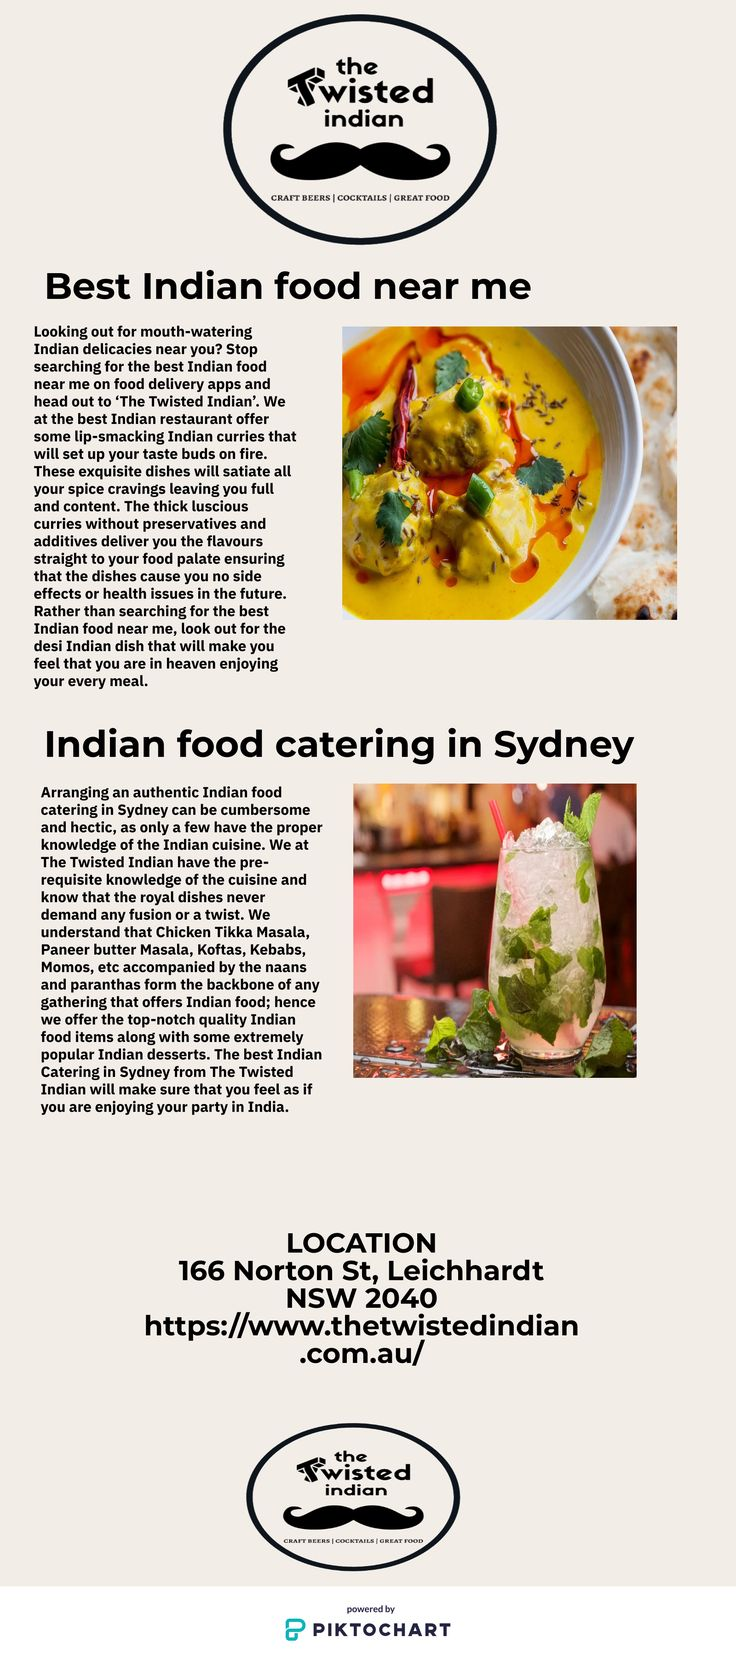 Pin by The Twisted Indian on Best Indian food near me in 2020 (With images) | Food, Indian food ...